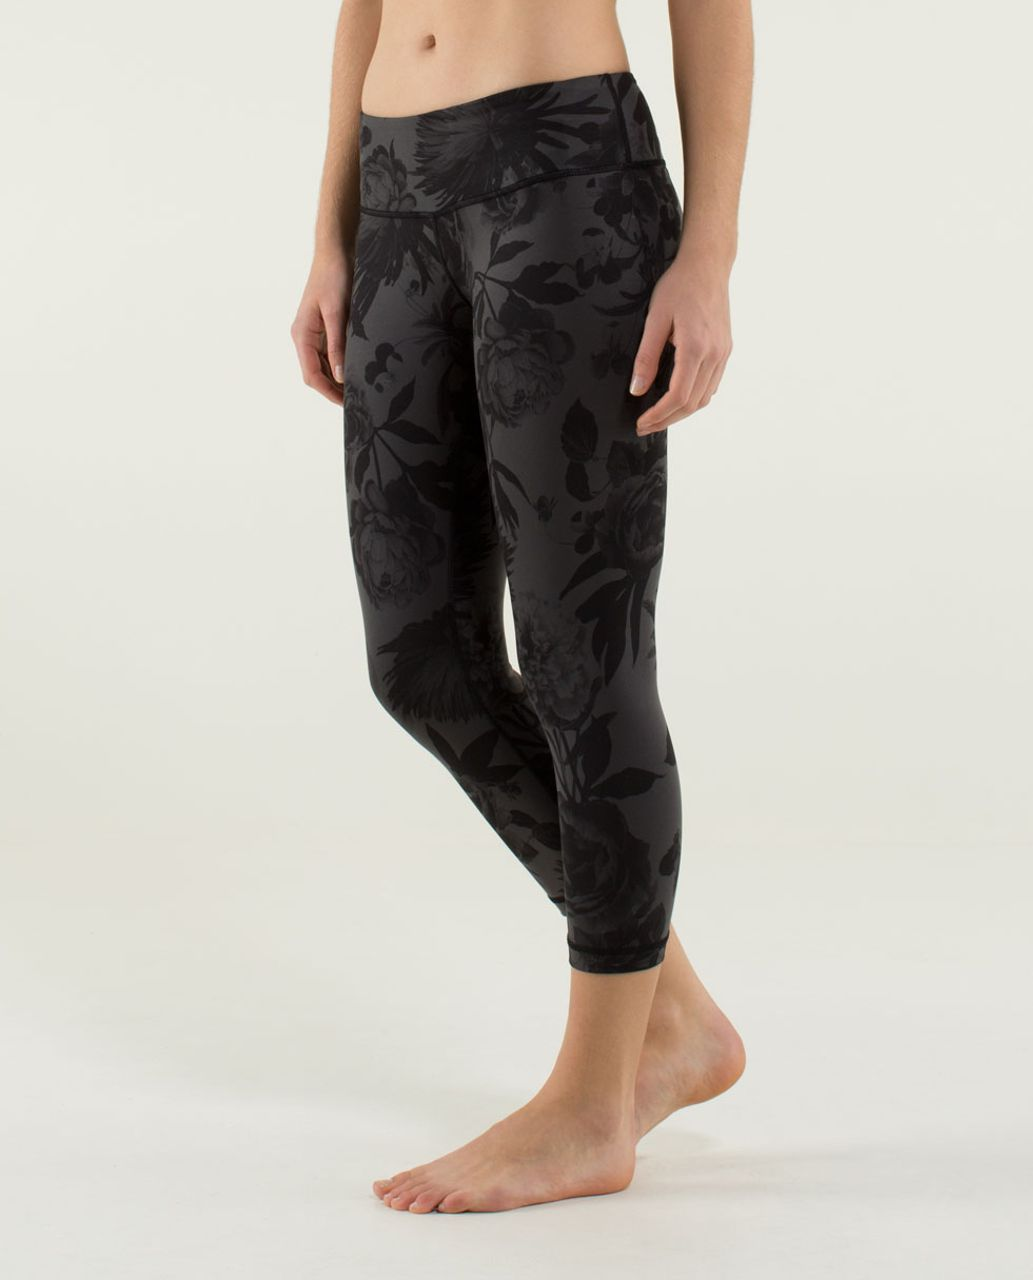 Lululemon Wunder Under Crop - Brisk Bloom Black Soot / Black